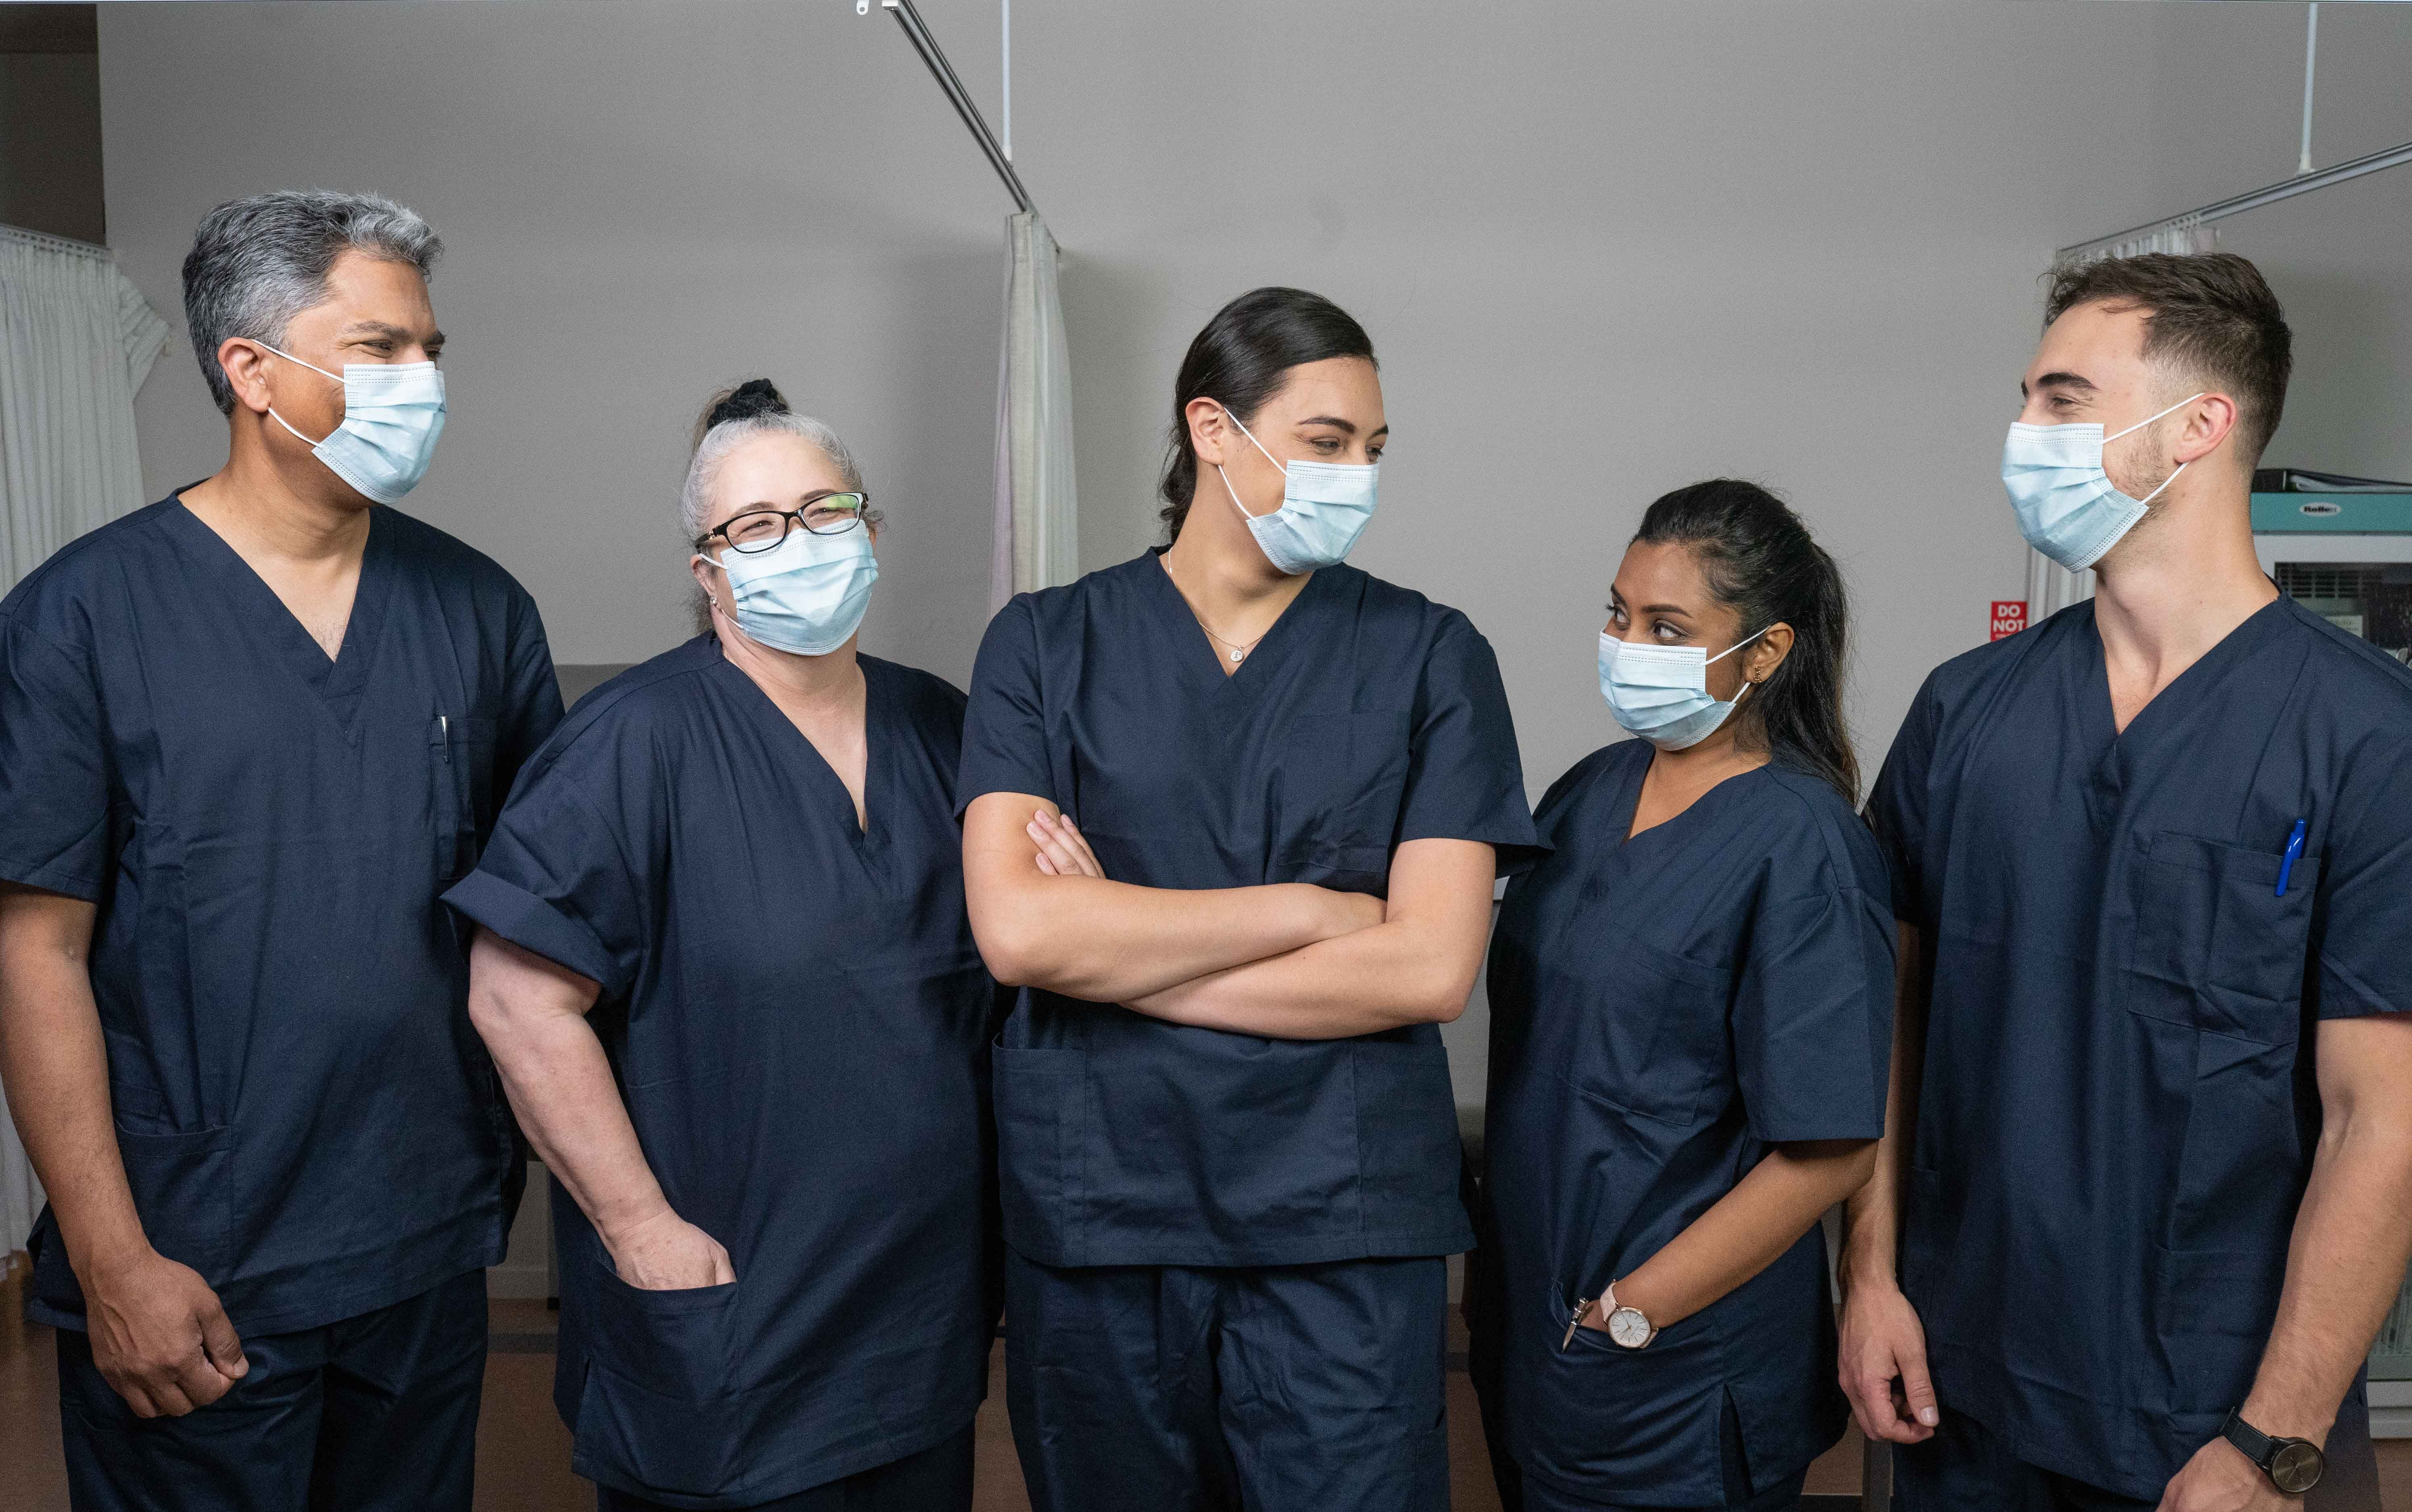 Five doctors in scrubs and masks